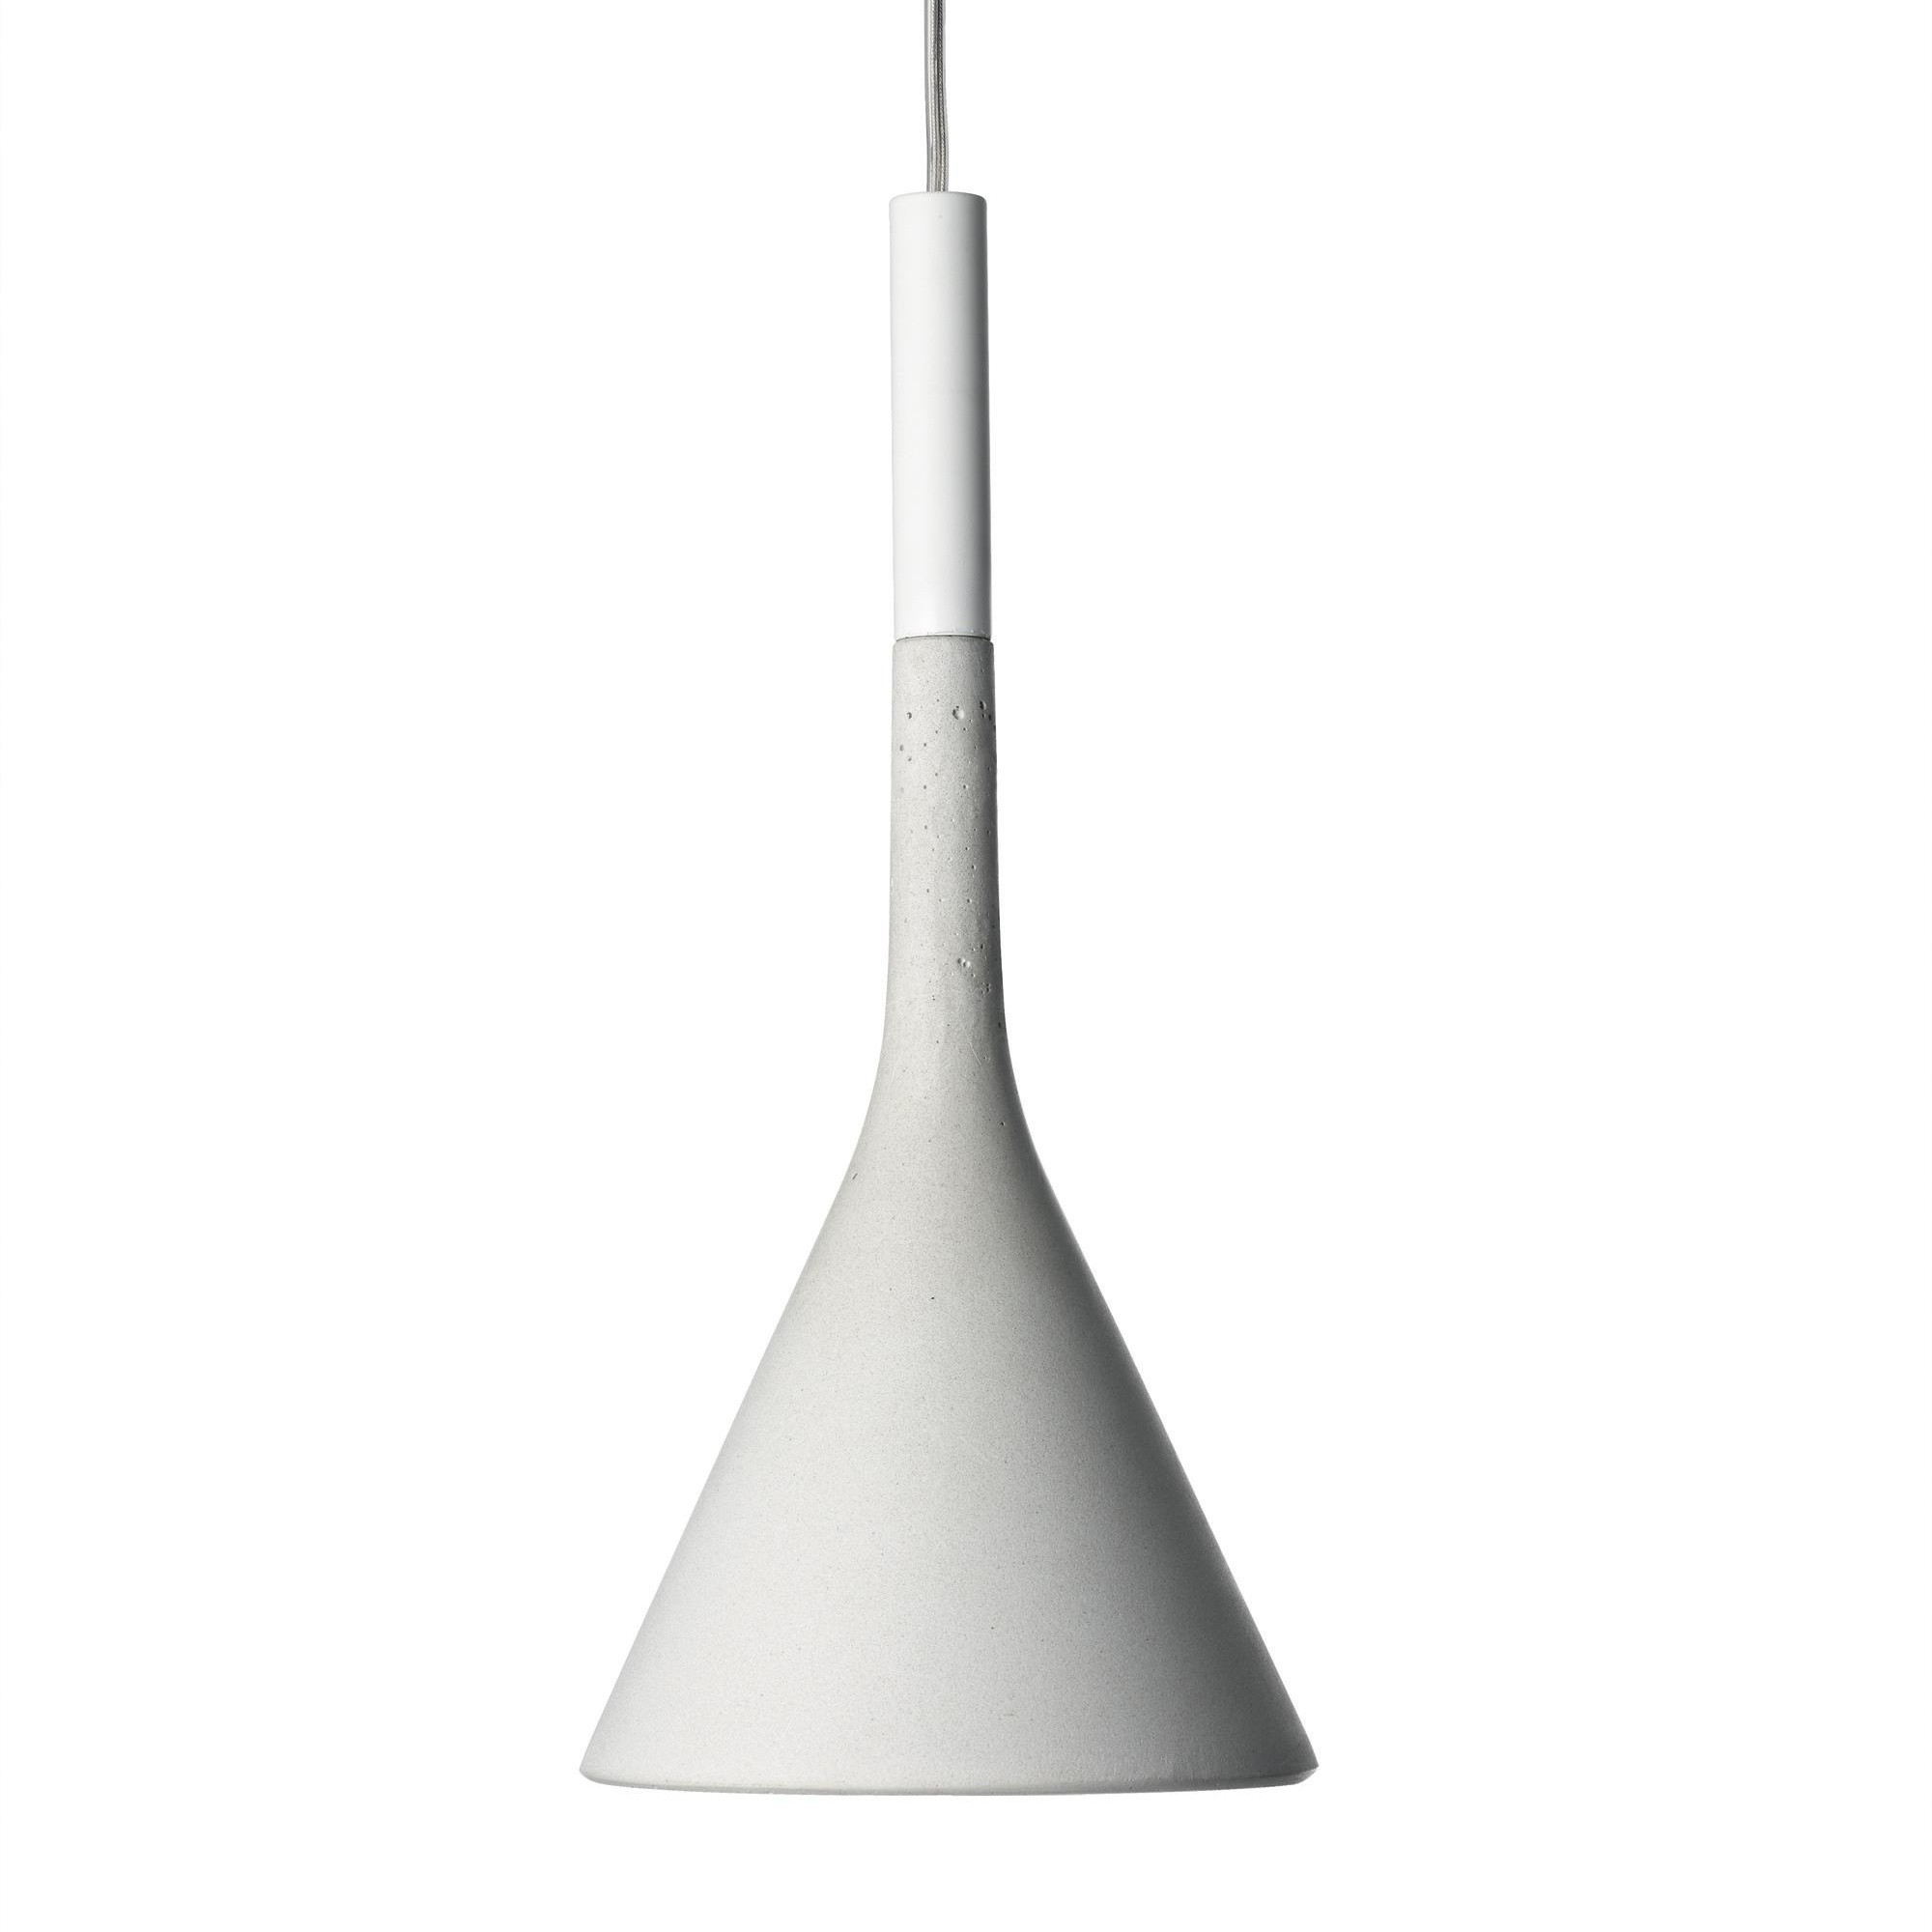 Foscarini Lights Aplomb G9 Suspension Lamp